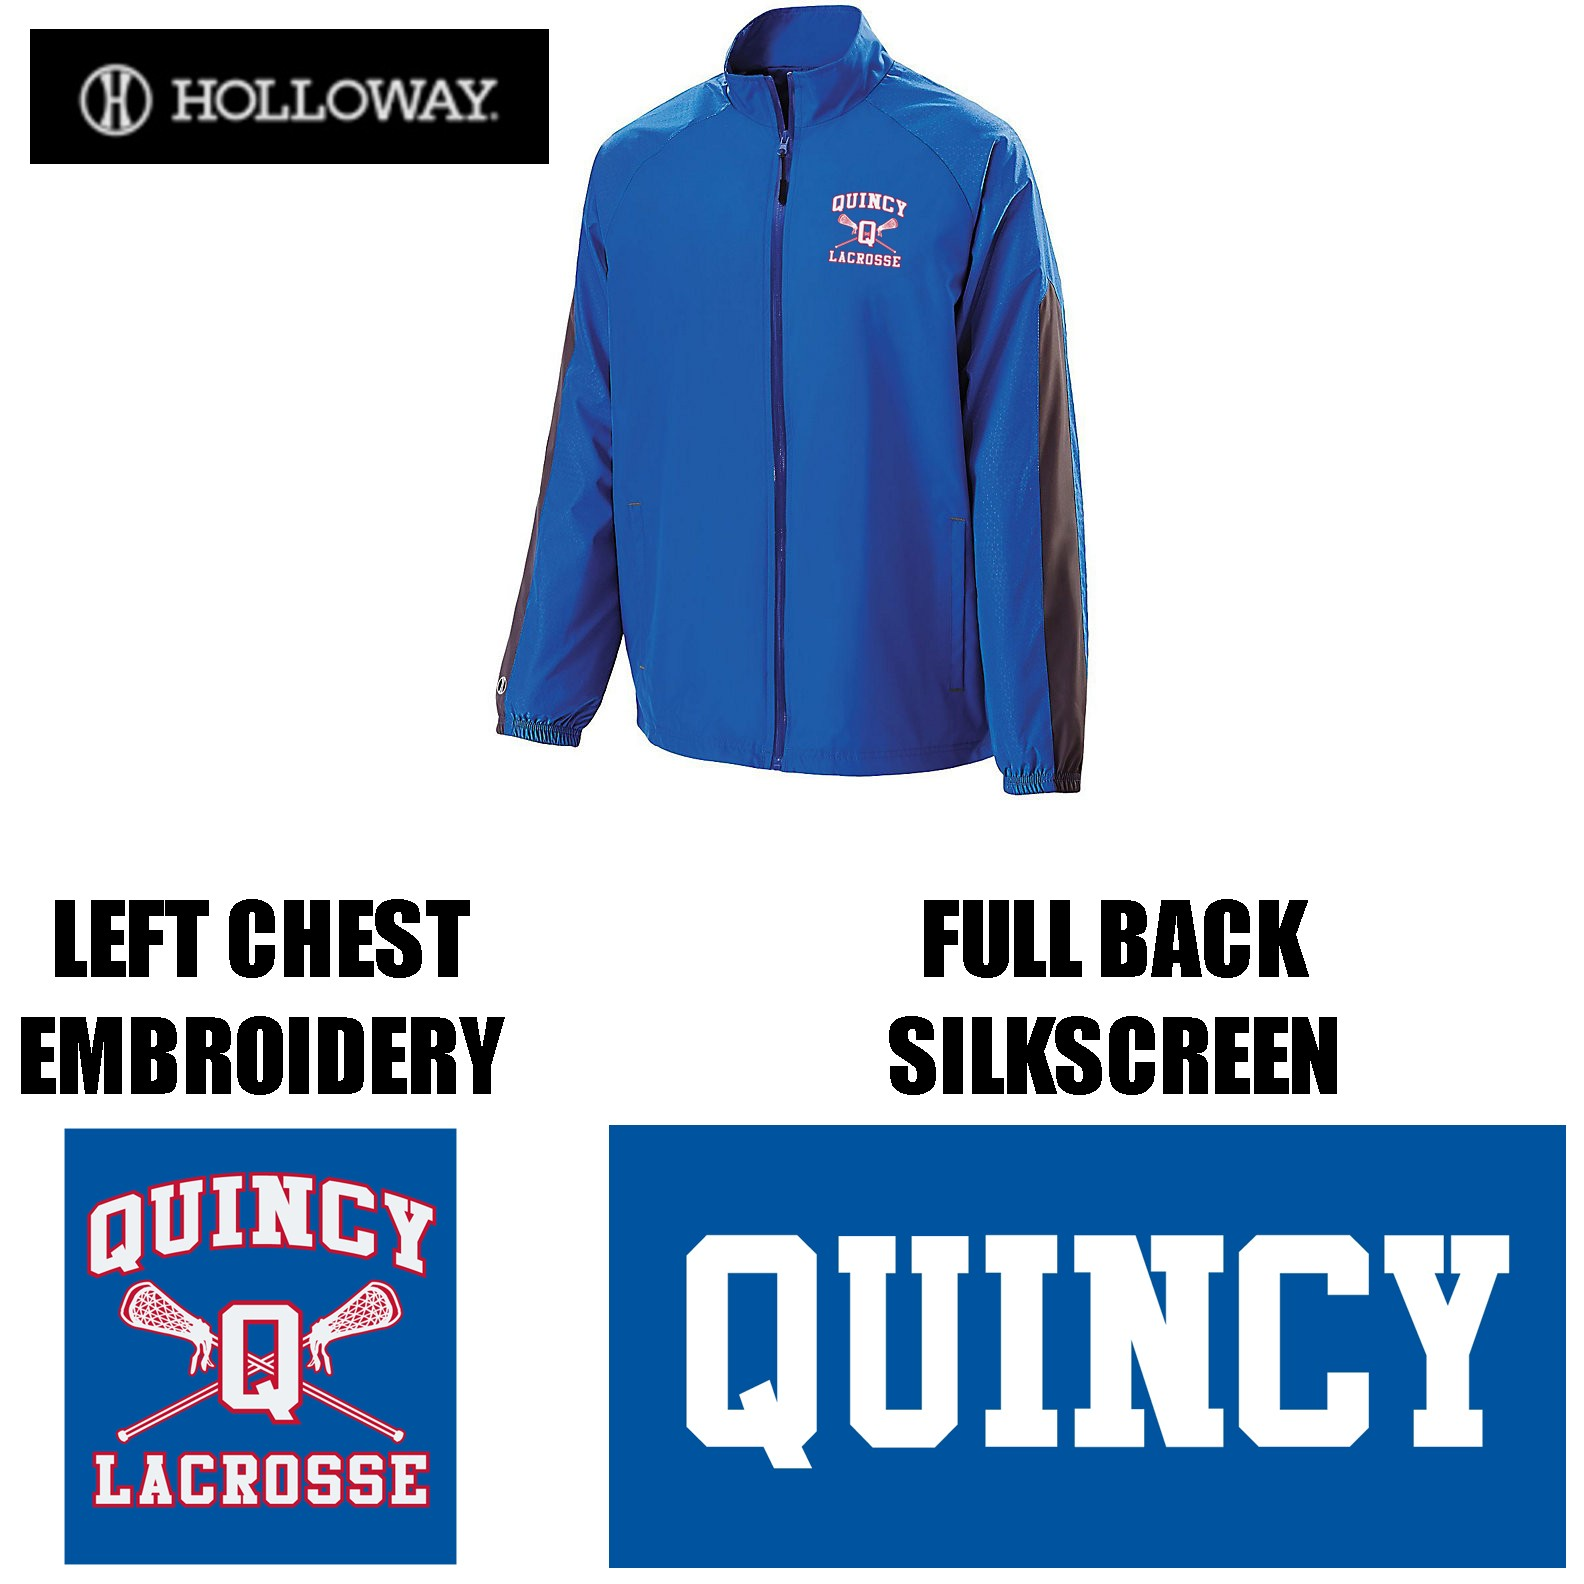 Quincy Lacrosse Holloway Brand Bionic Jacket, Men's Fit